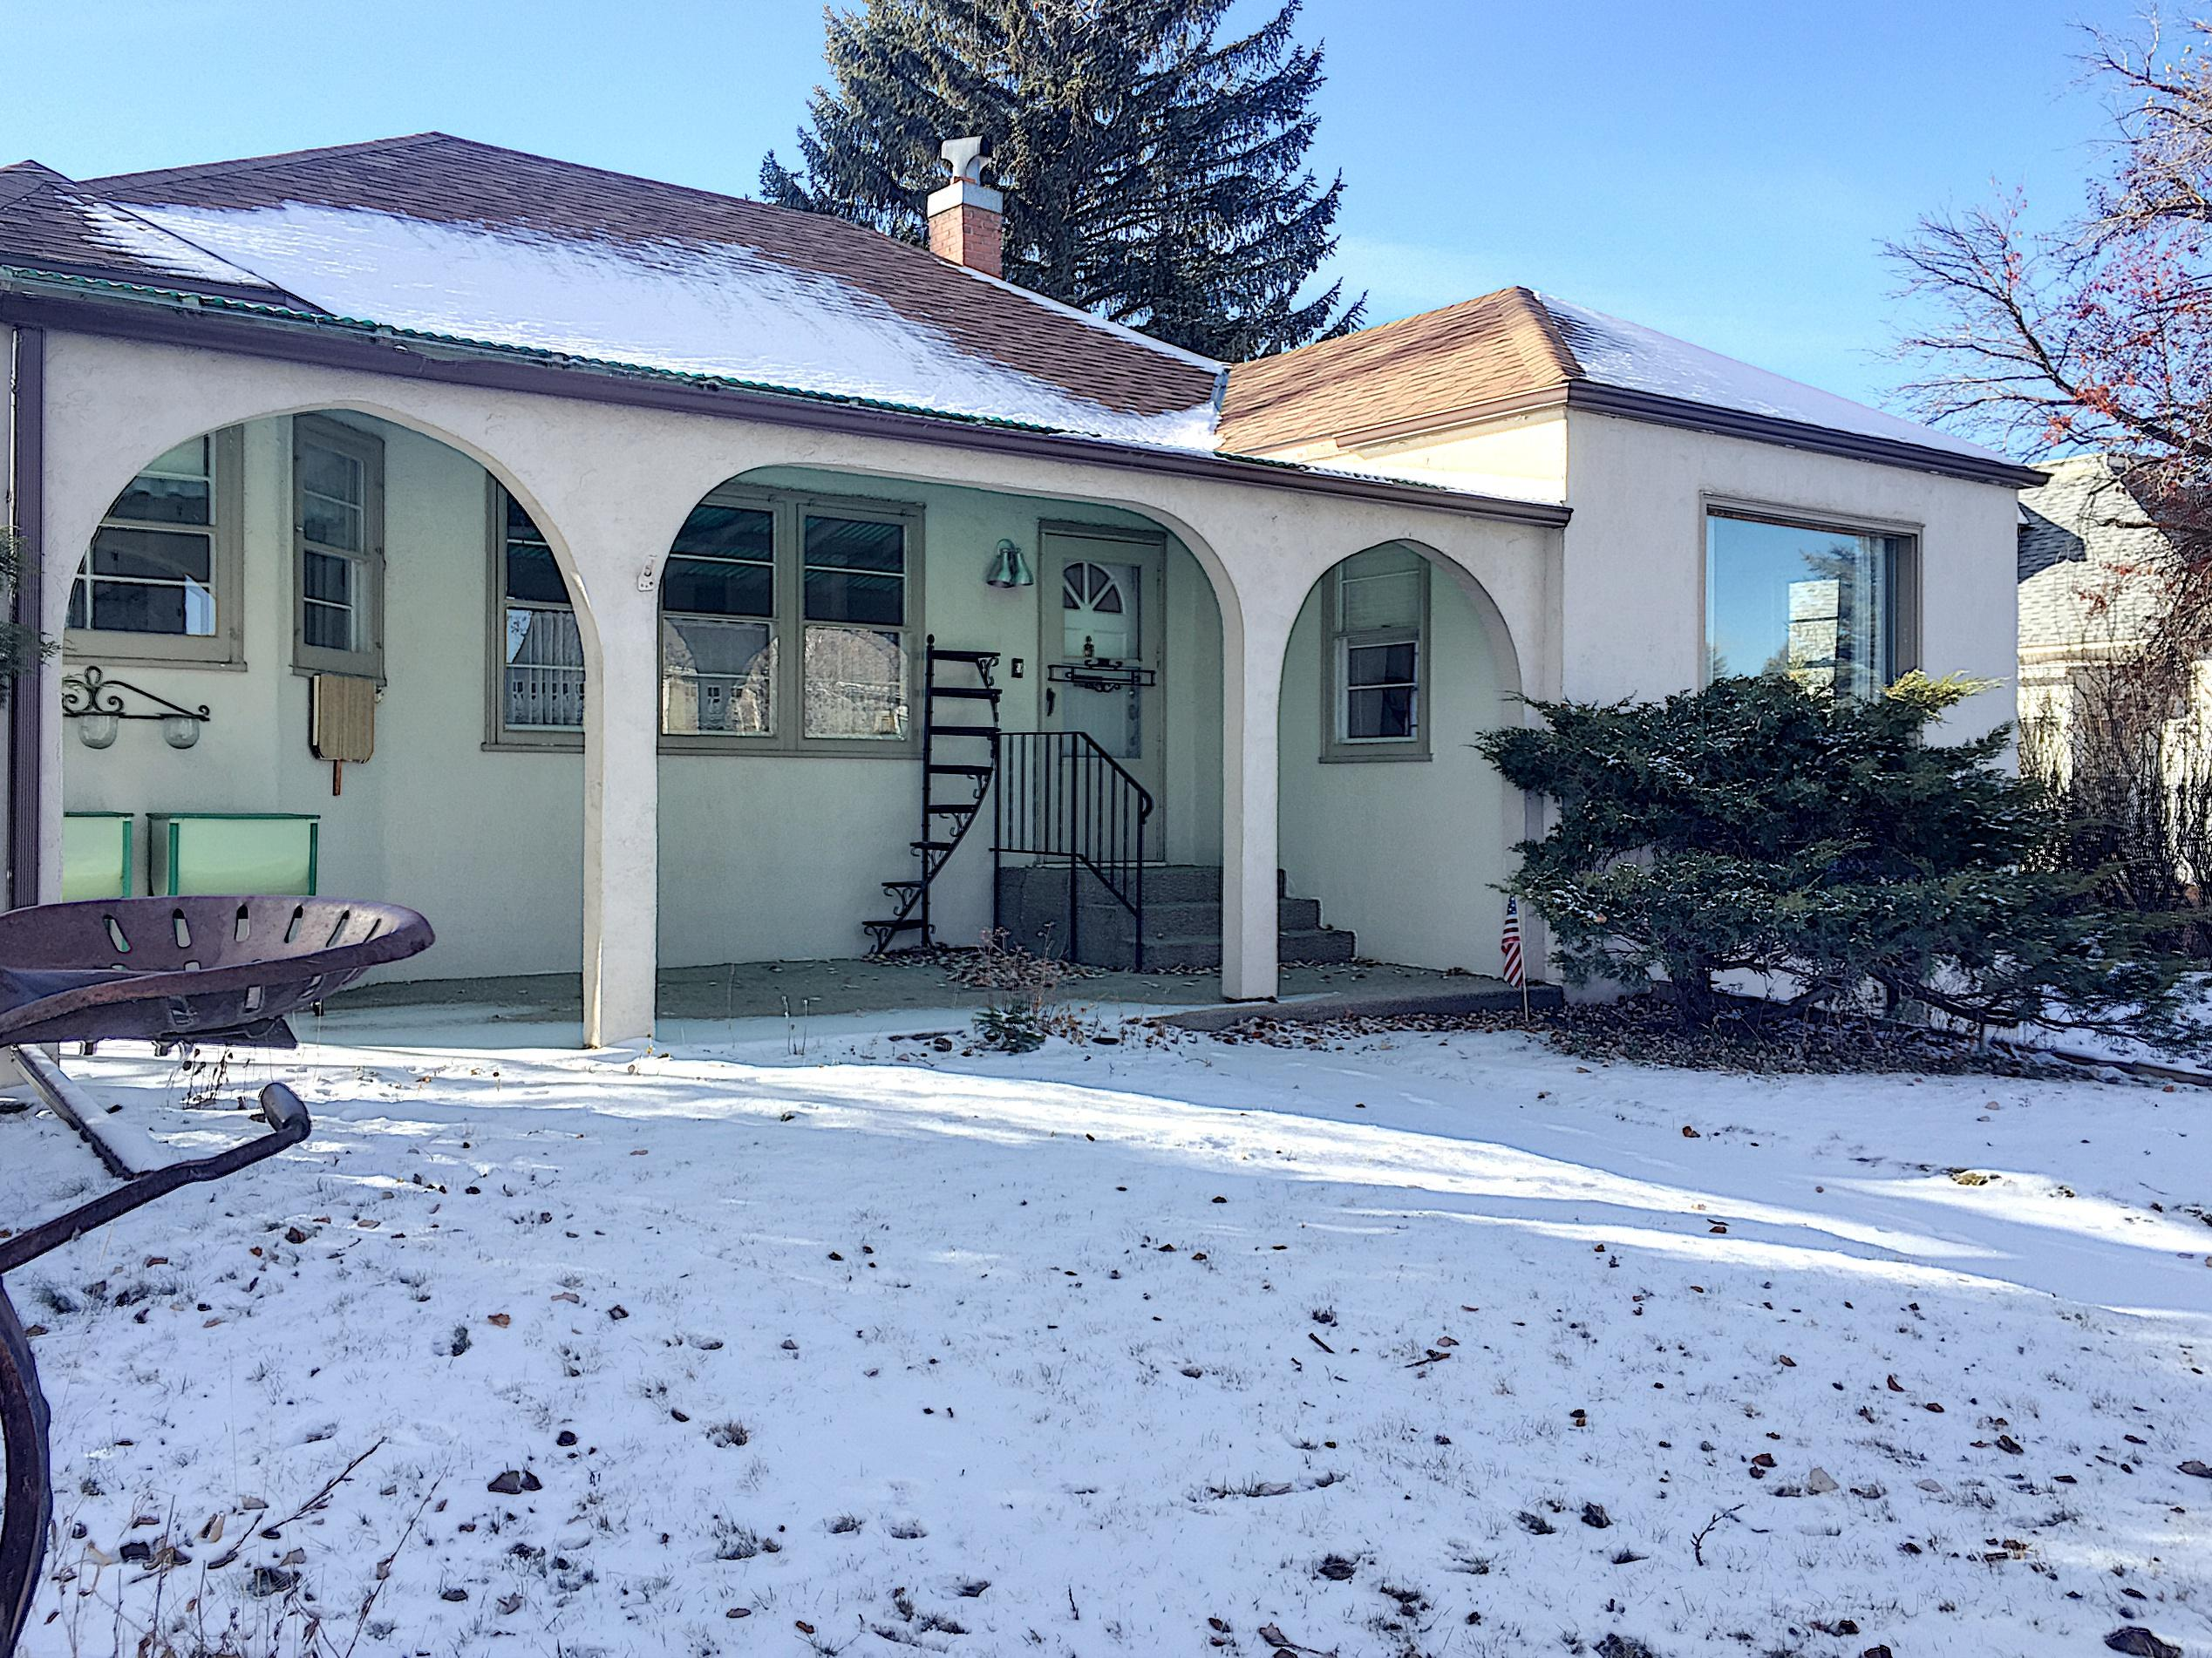 308 Main Street, Buffalo, Wyoming 82834, 3 Bedrooms Bedrooms, ,2 BathroomsBathrooms,Residential,For Sale,Main,18-1188